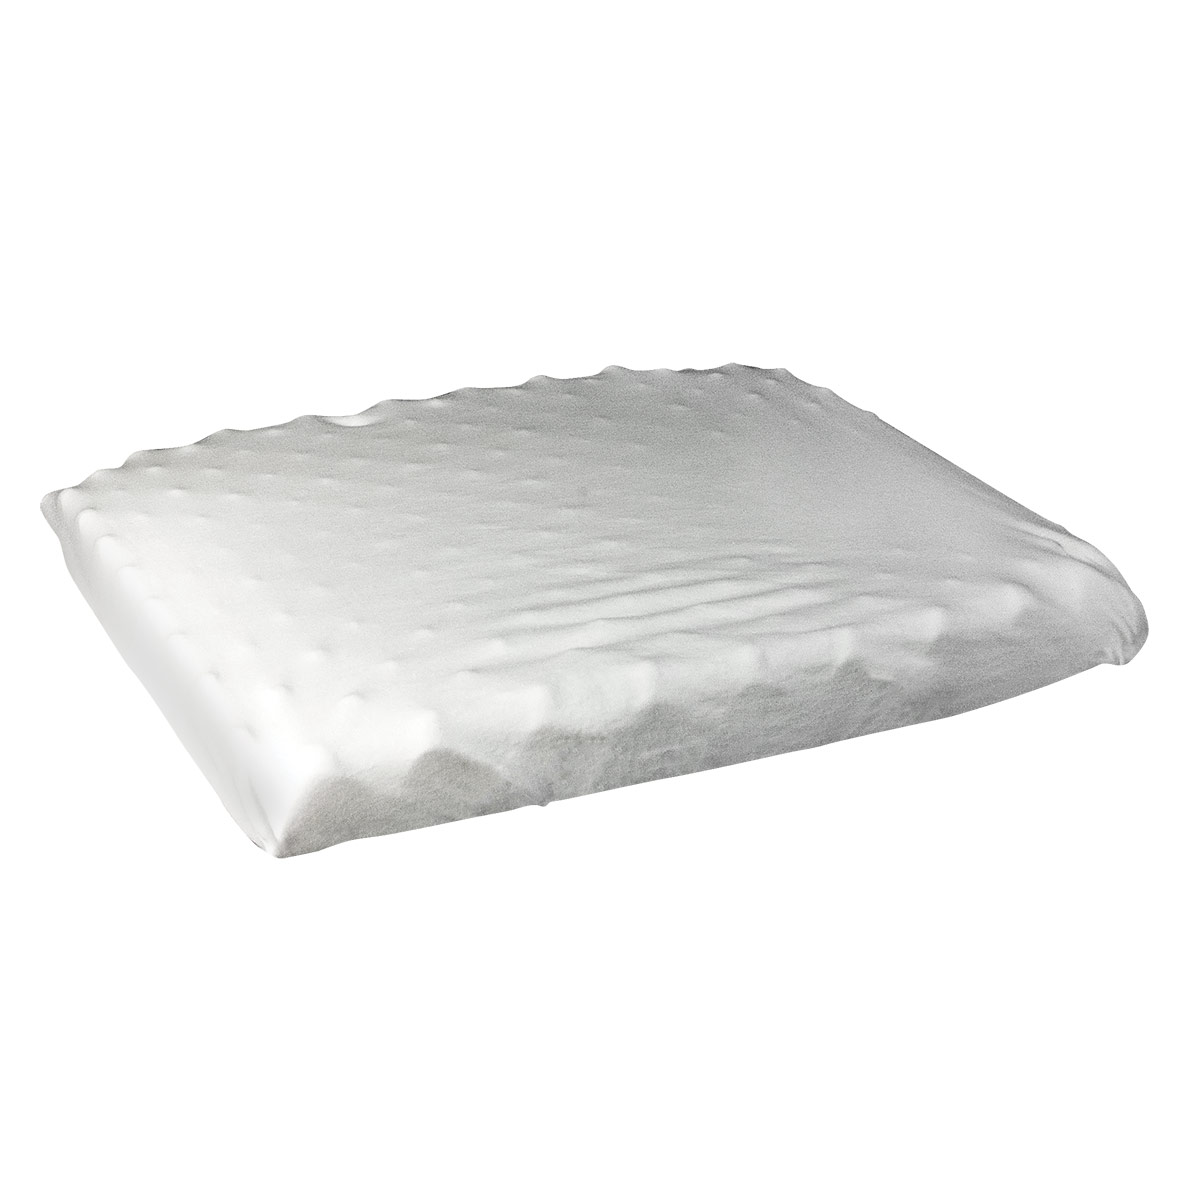 Eggcrate Seat Cushion with Poly-Cotton Cover Price: $18.95